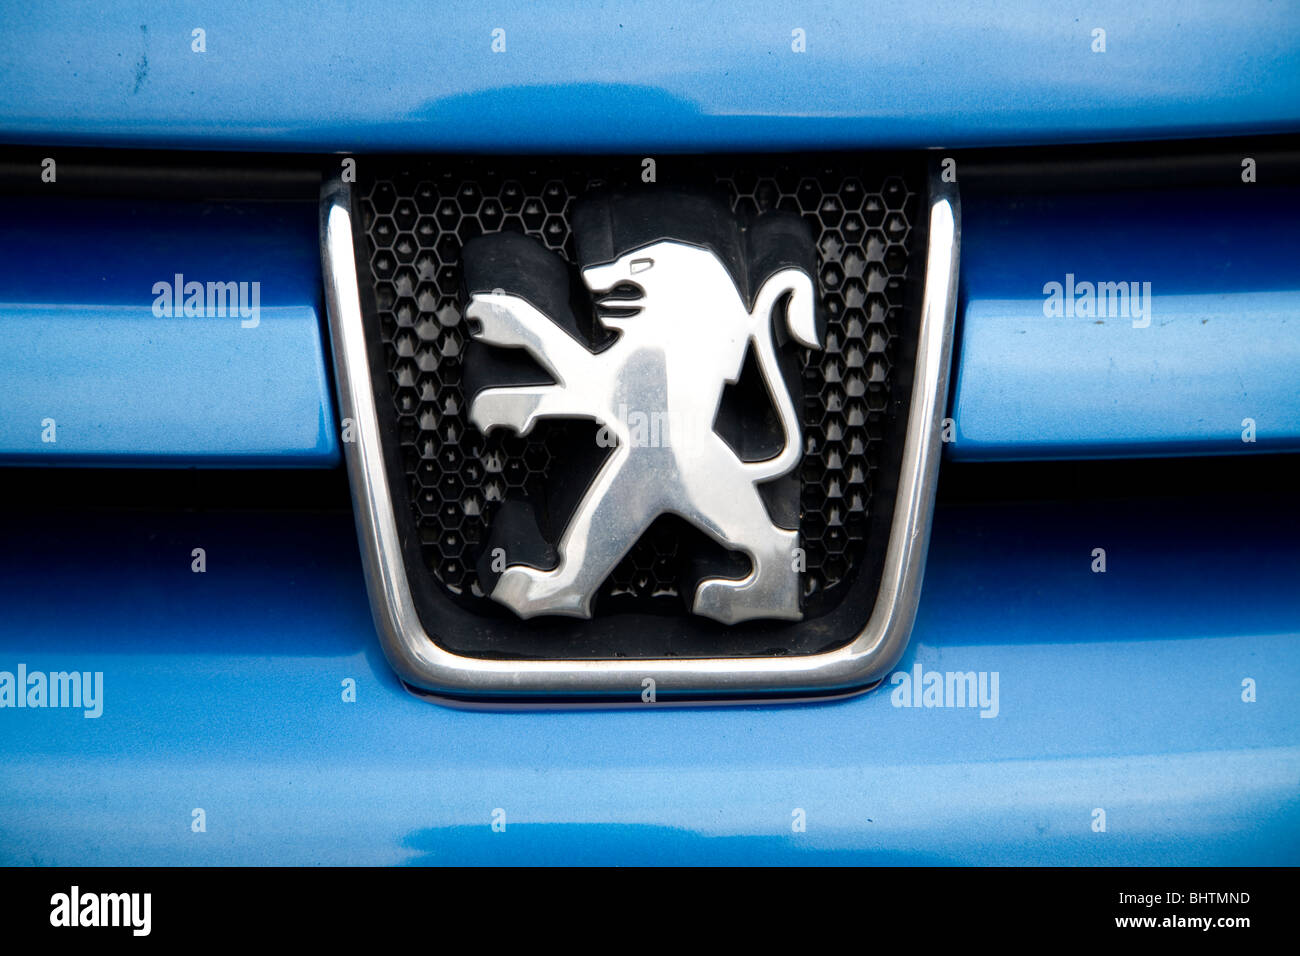 Peugeot High Resolution Stock Photography And Images Alamy